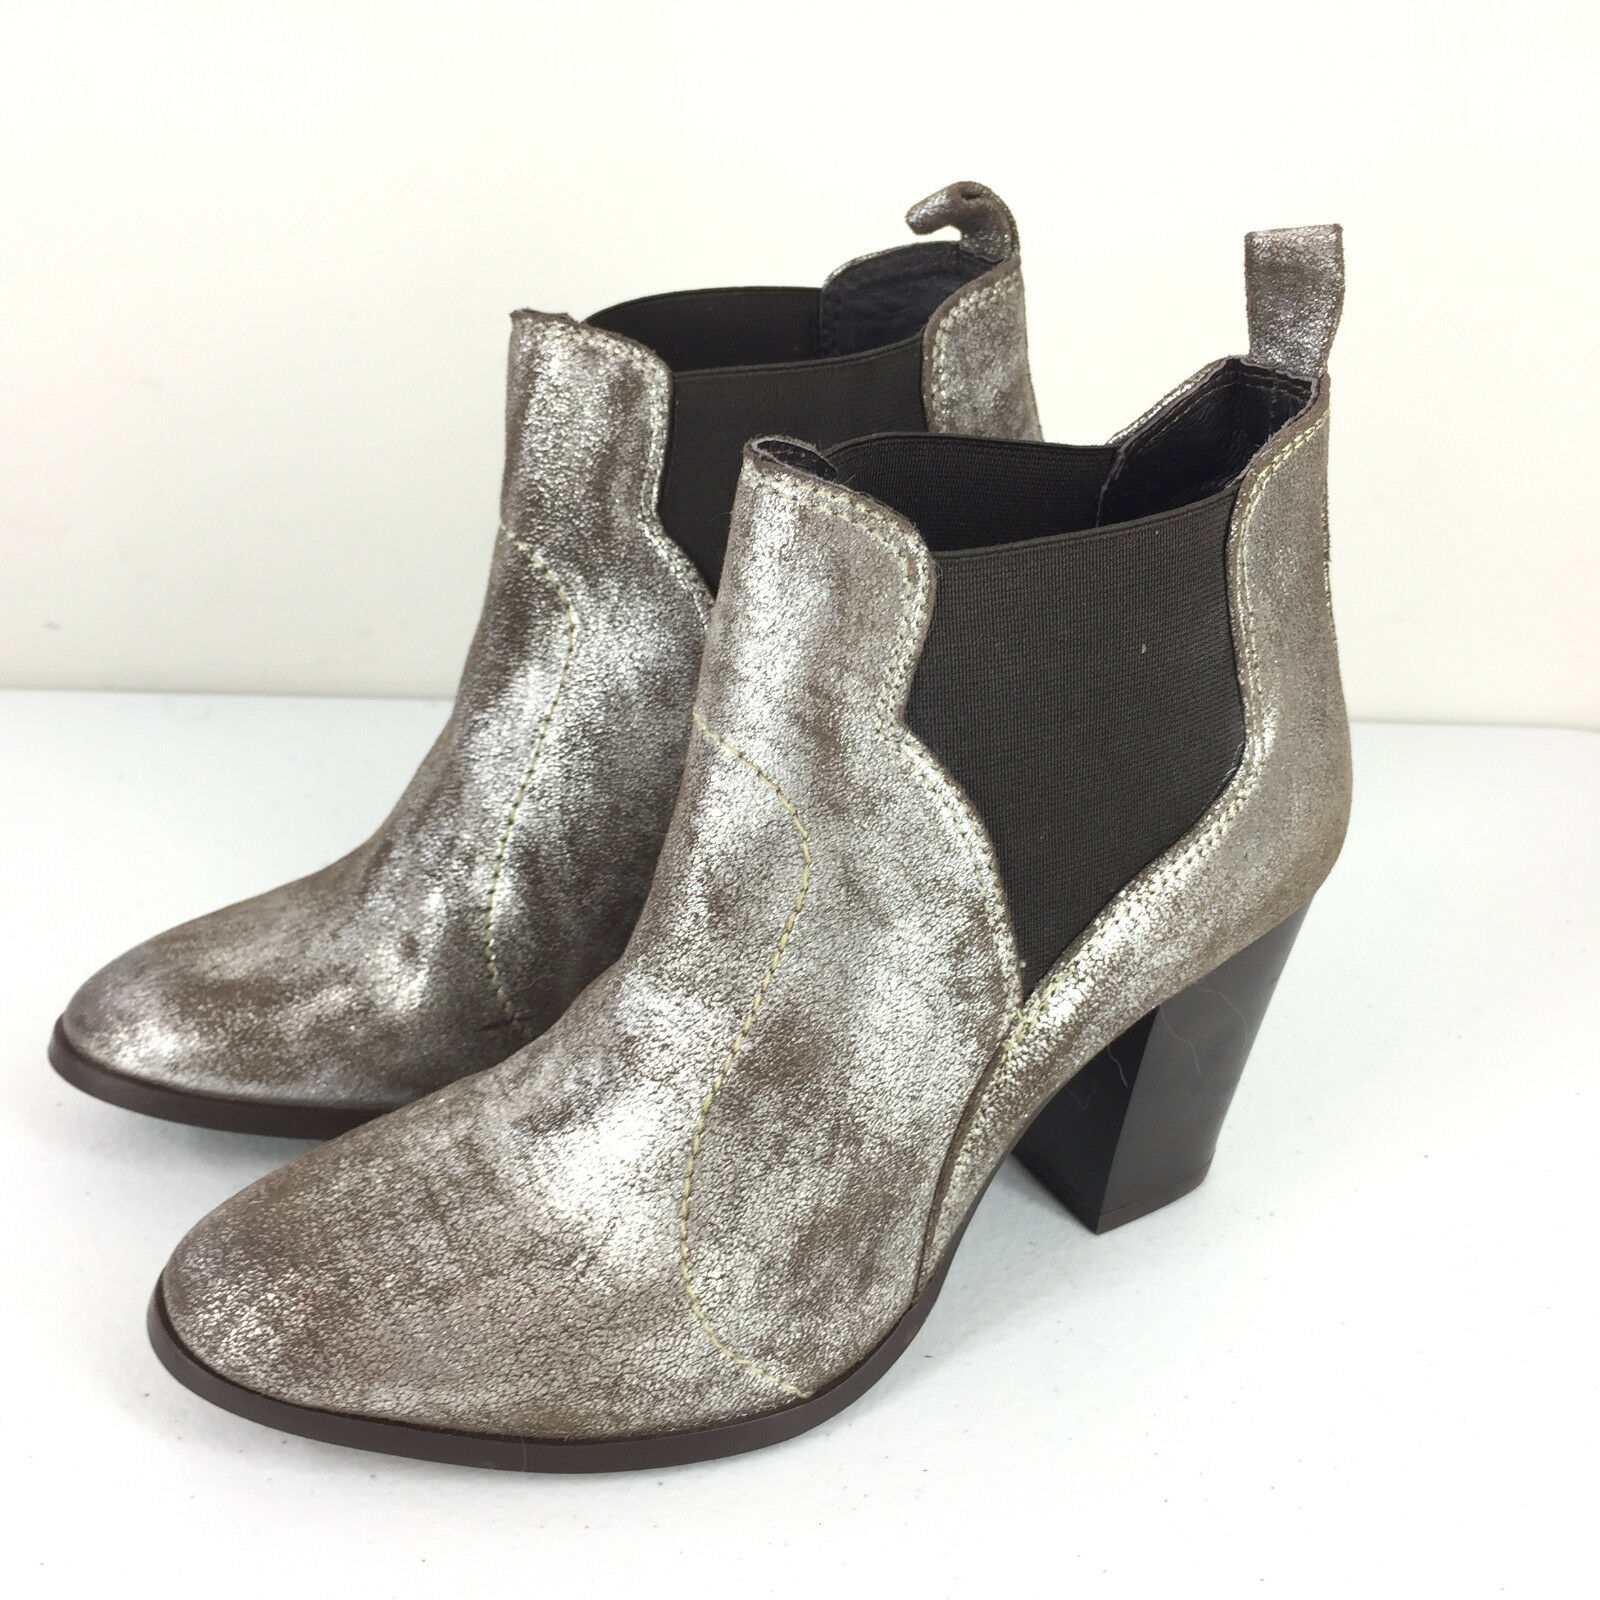 Seychelles Anthropologie 7 Ankle Boots Silver Metallic Brown Crackle EUC